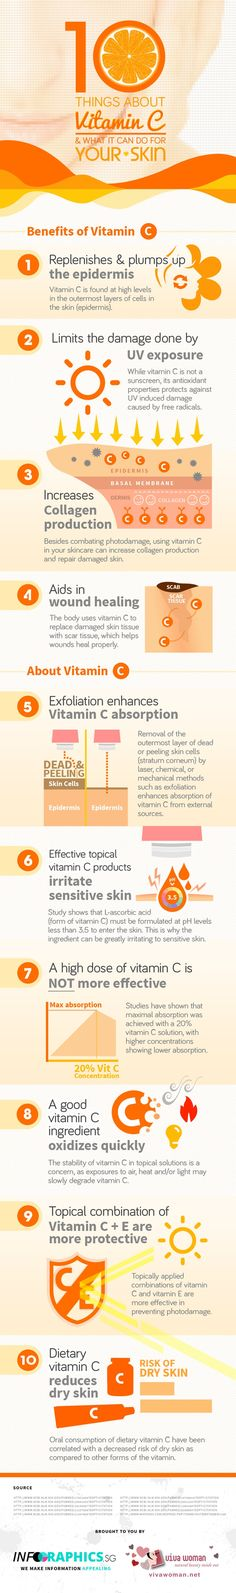 10 things about vitamin C for your skin. KUR SPA ( I swear by vitamin C, if you can eat an orange everyday or anything strong w vitamin C , your skin will thank you -G ) Anti Aging Tips, Anti Aging Skin Care, Natural Skin Care, Natural Beauty, Skin Tips, Skin Care Tips, Vitamin C Pulver, Nutrition, Kat Von D